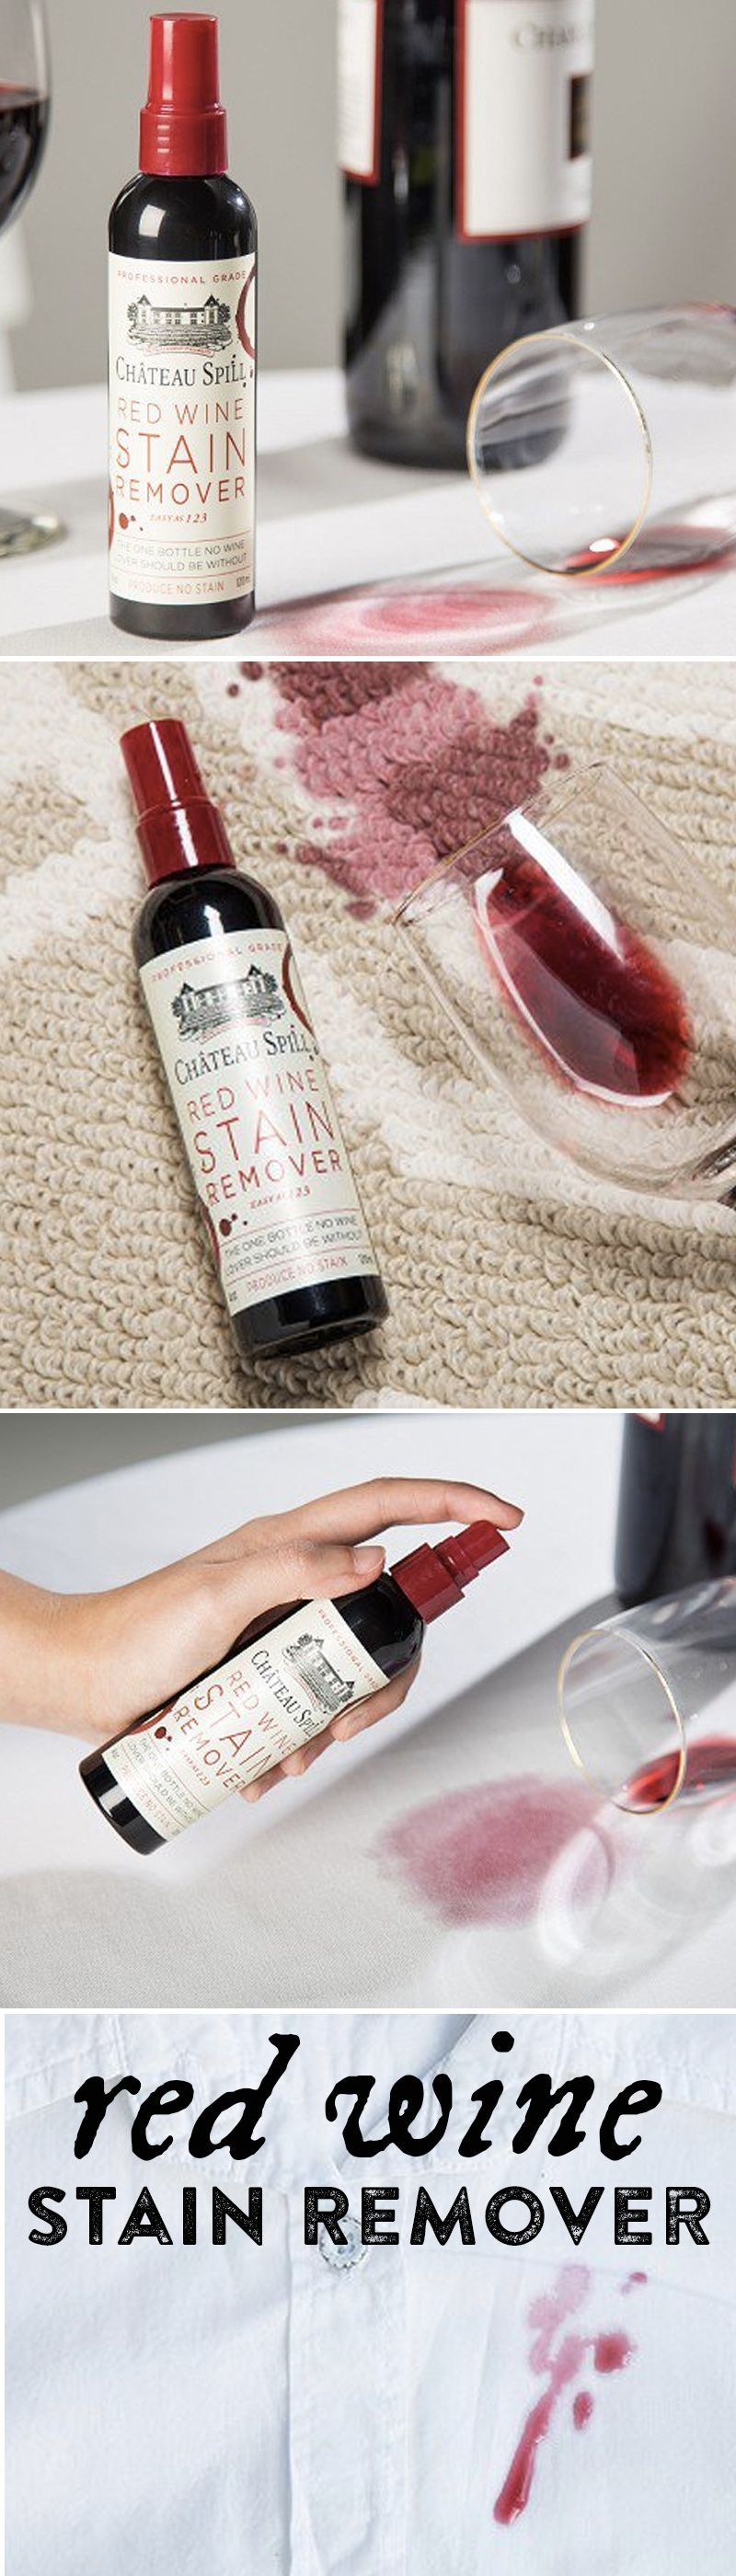 Wondering how to remove red wine stains? Try this. Red